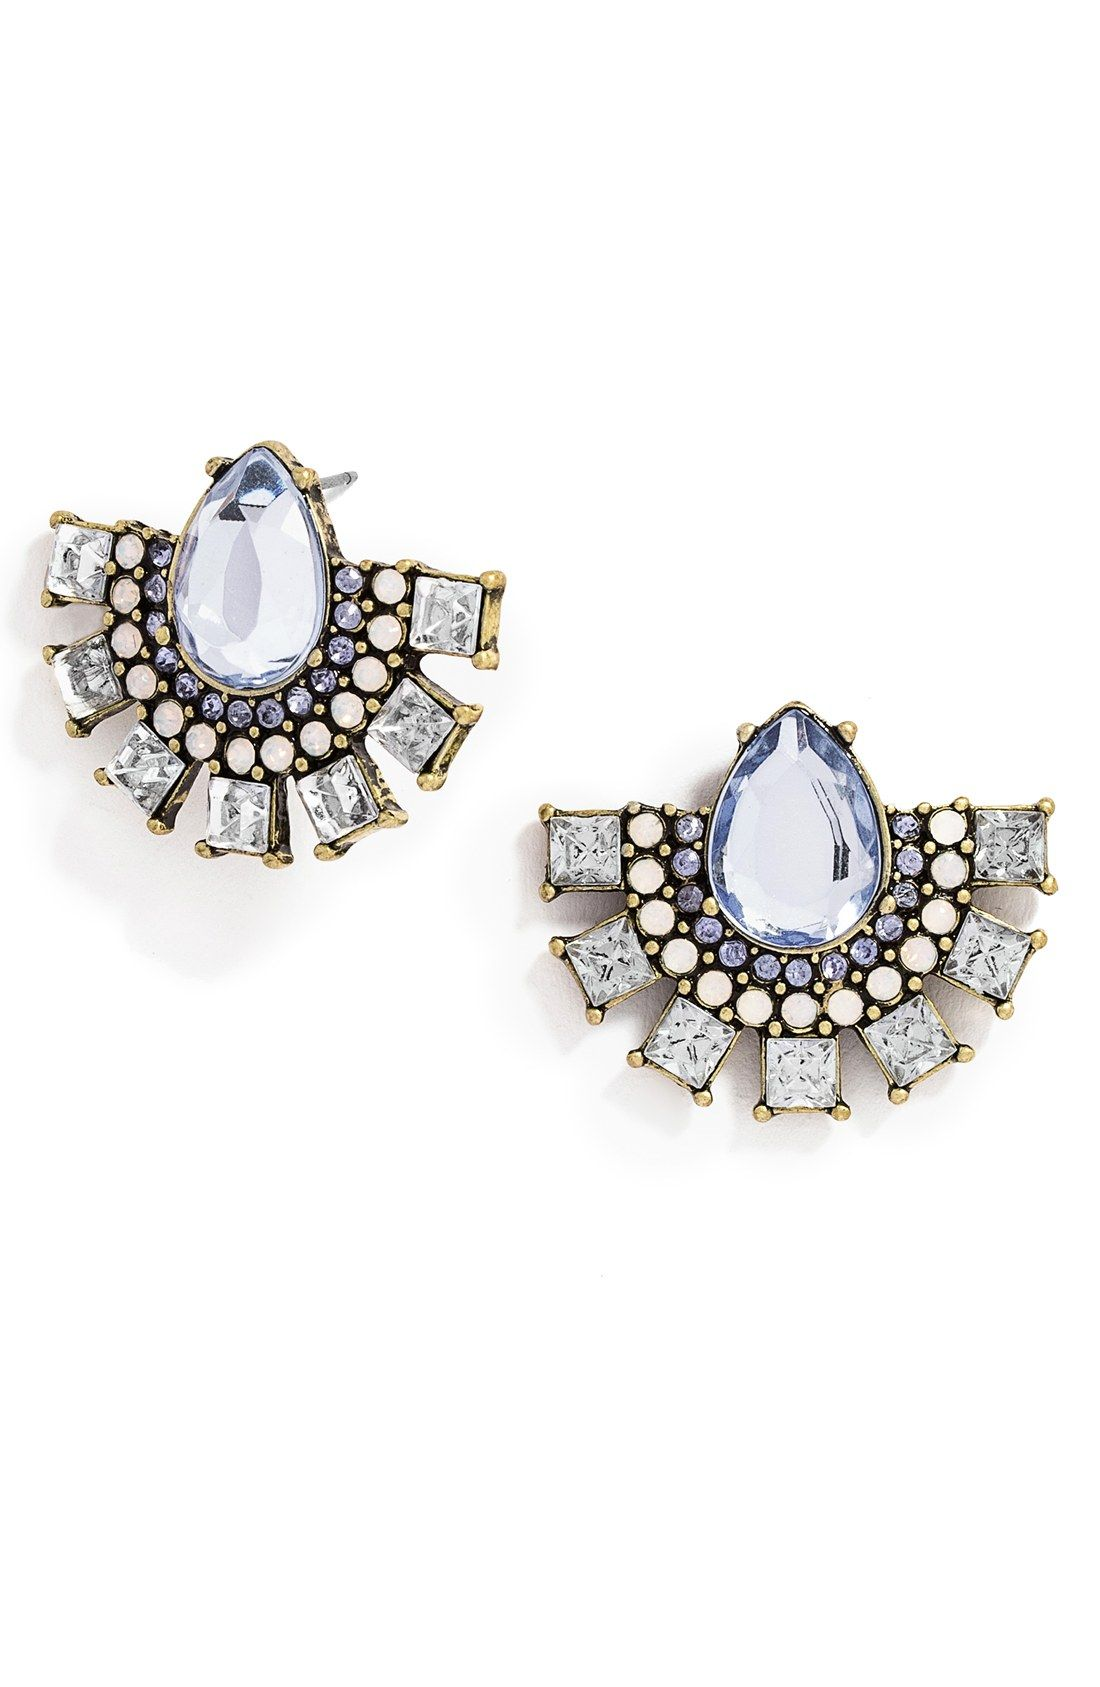 In Love With These Sparkly Blue And Clear Crystal Statement Stud Earrings